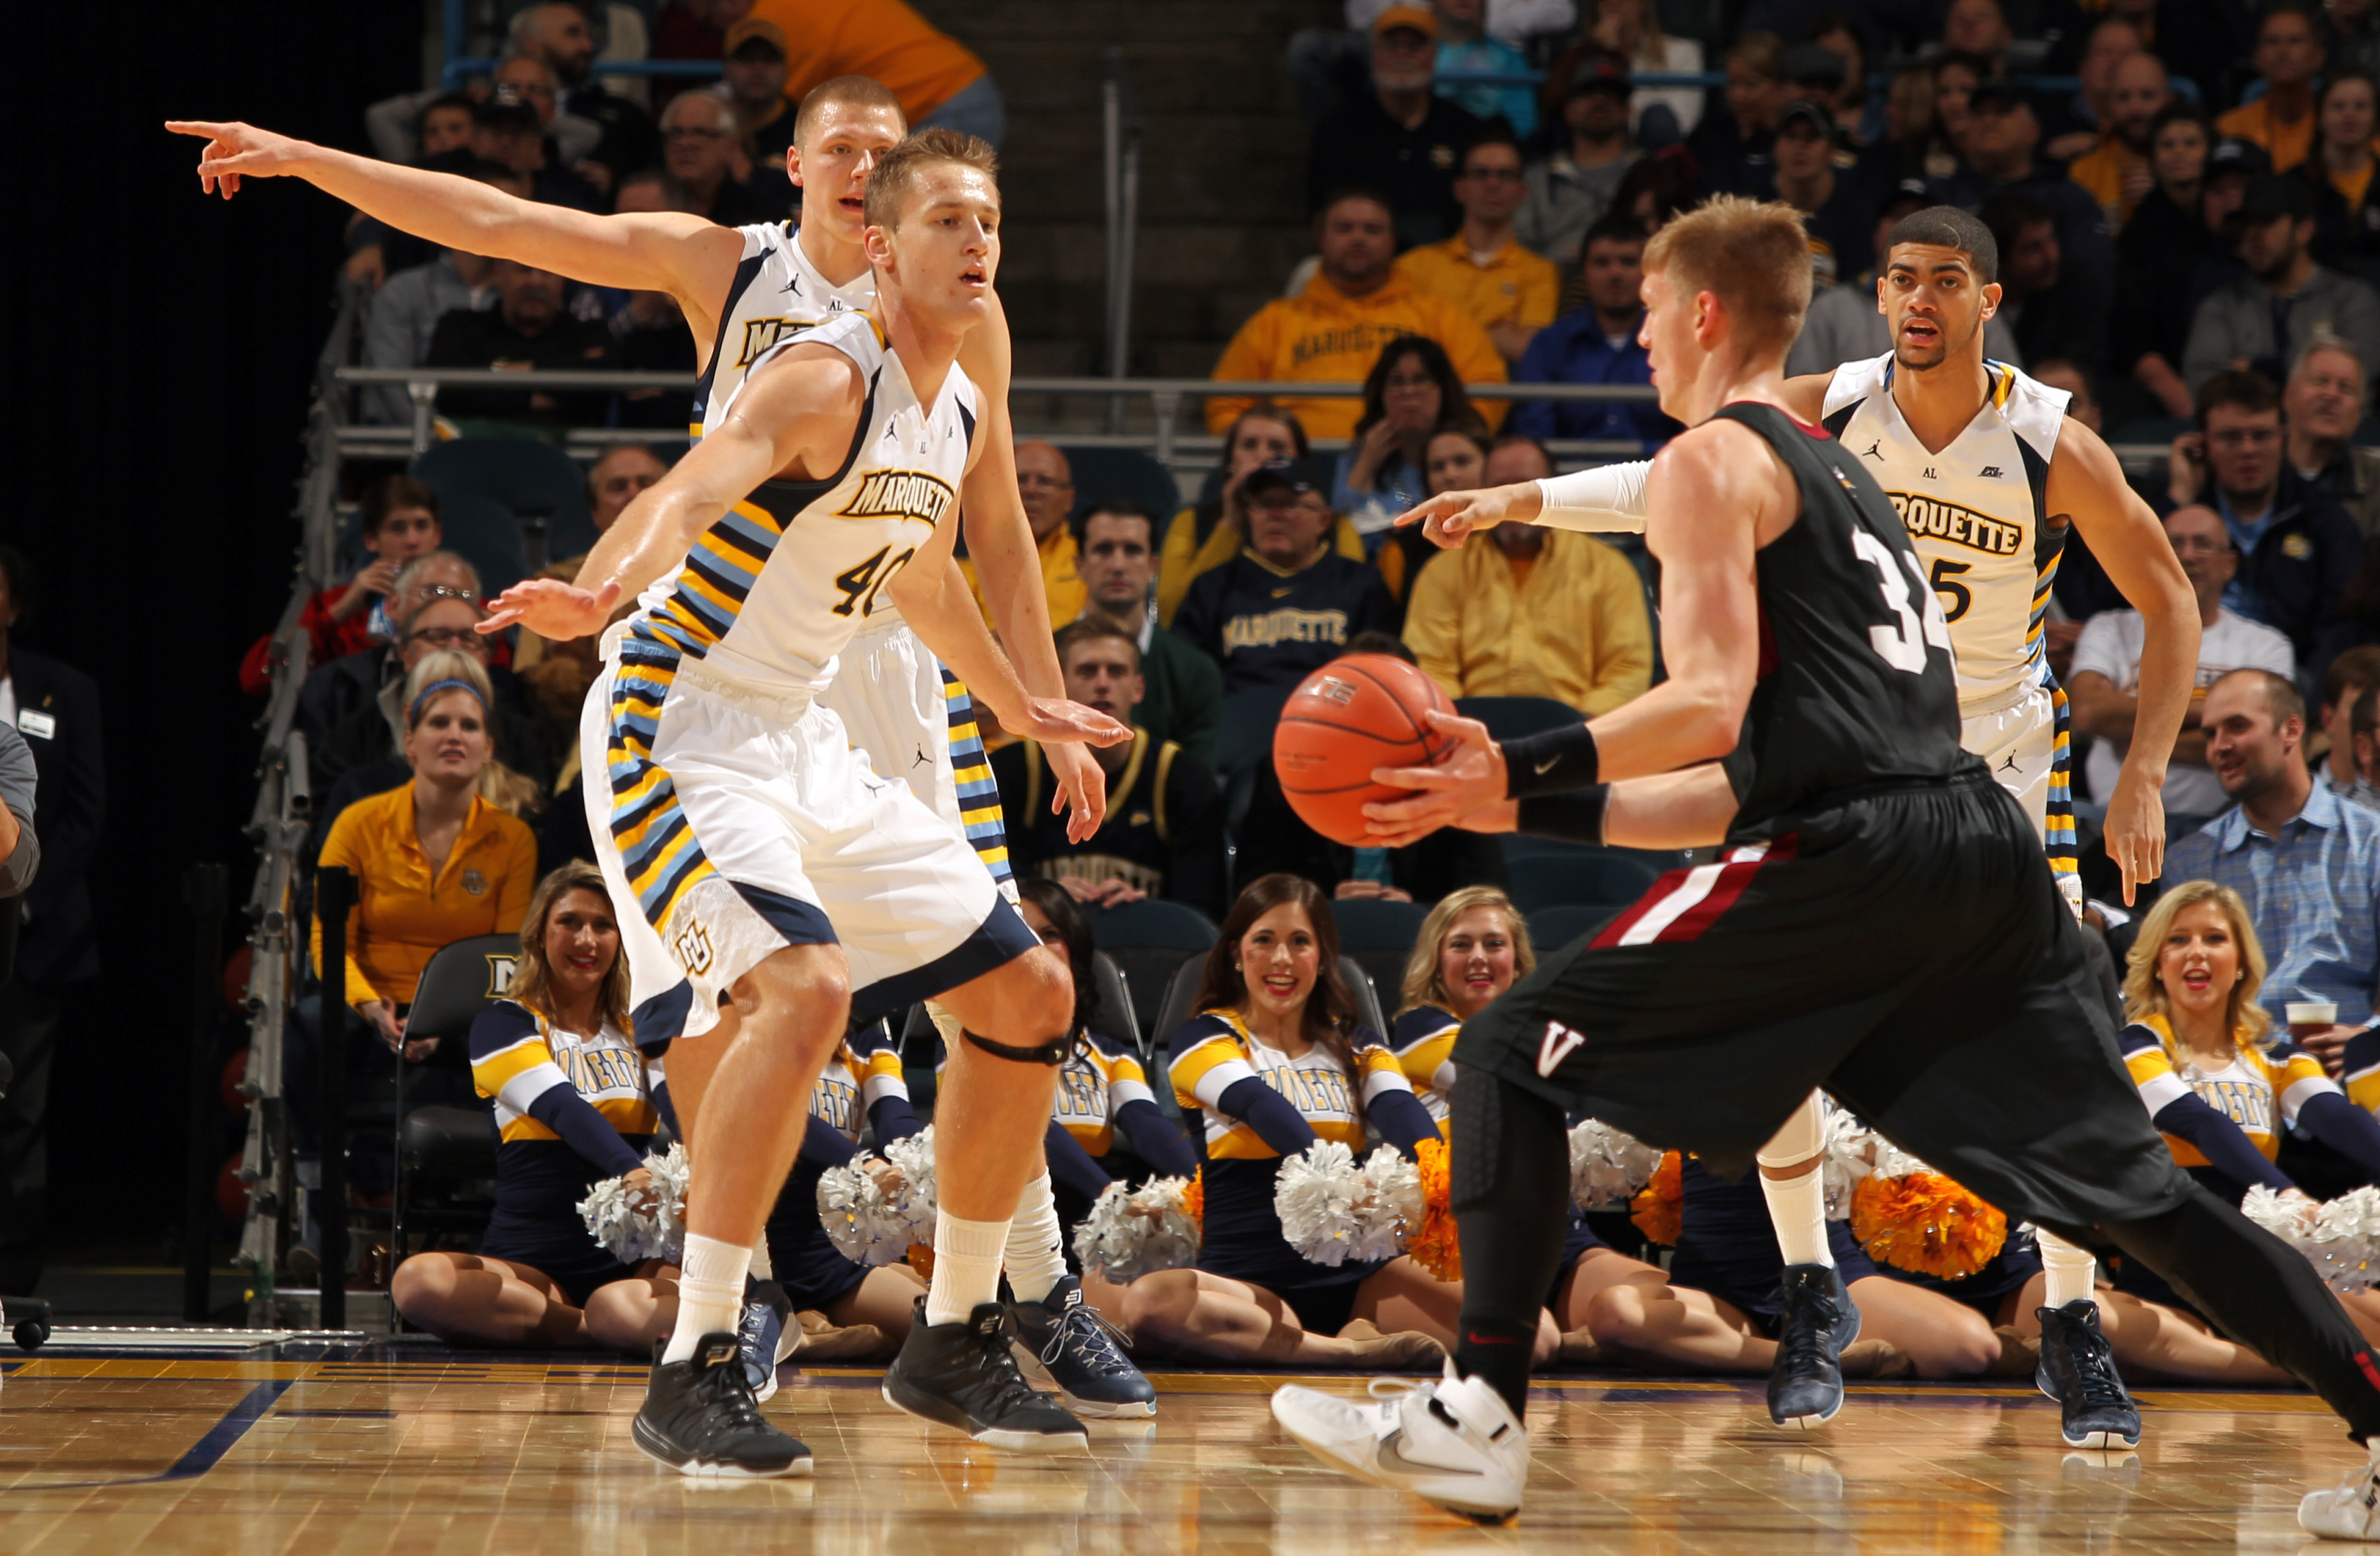 Luke Fischer had his second career double-double with 17 points and 10 rebounds.